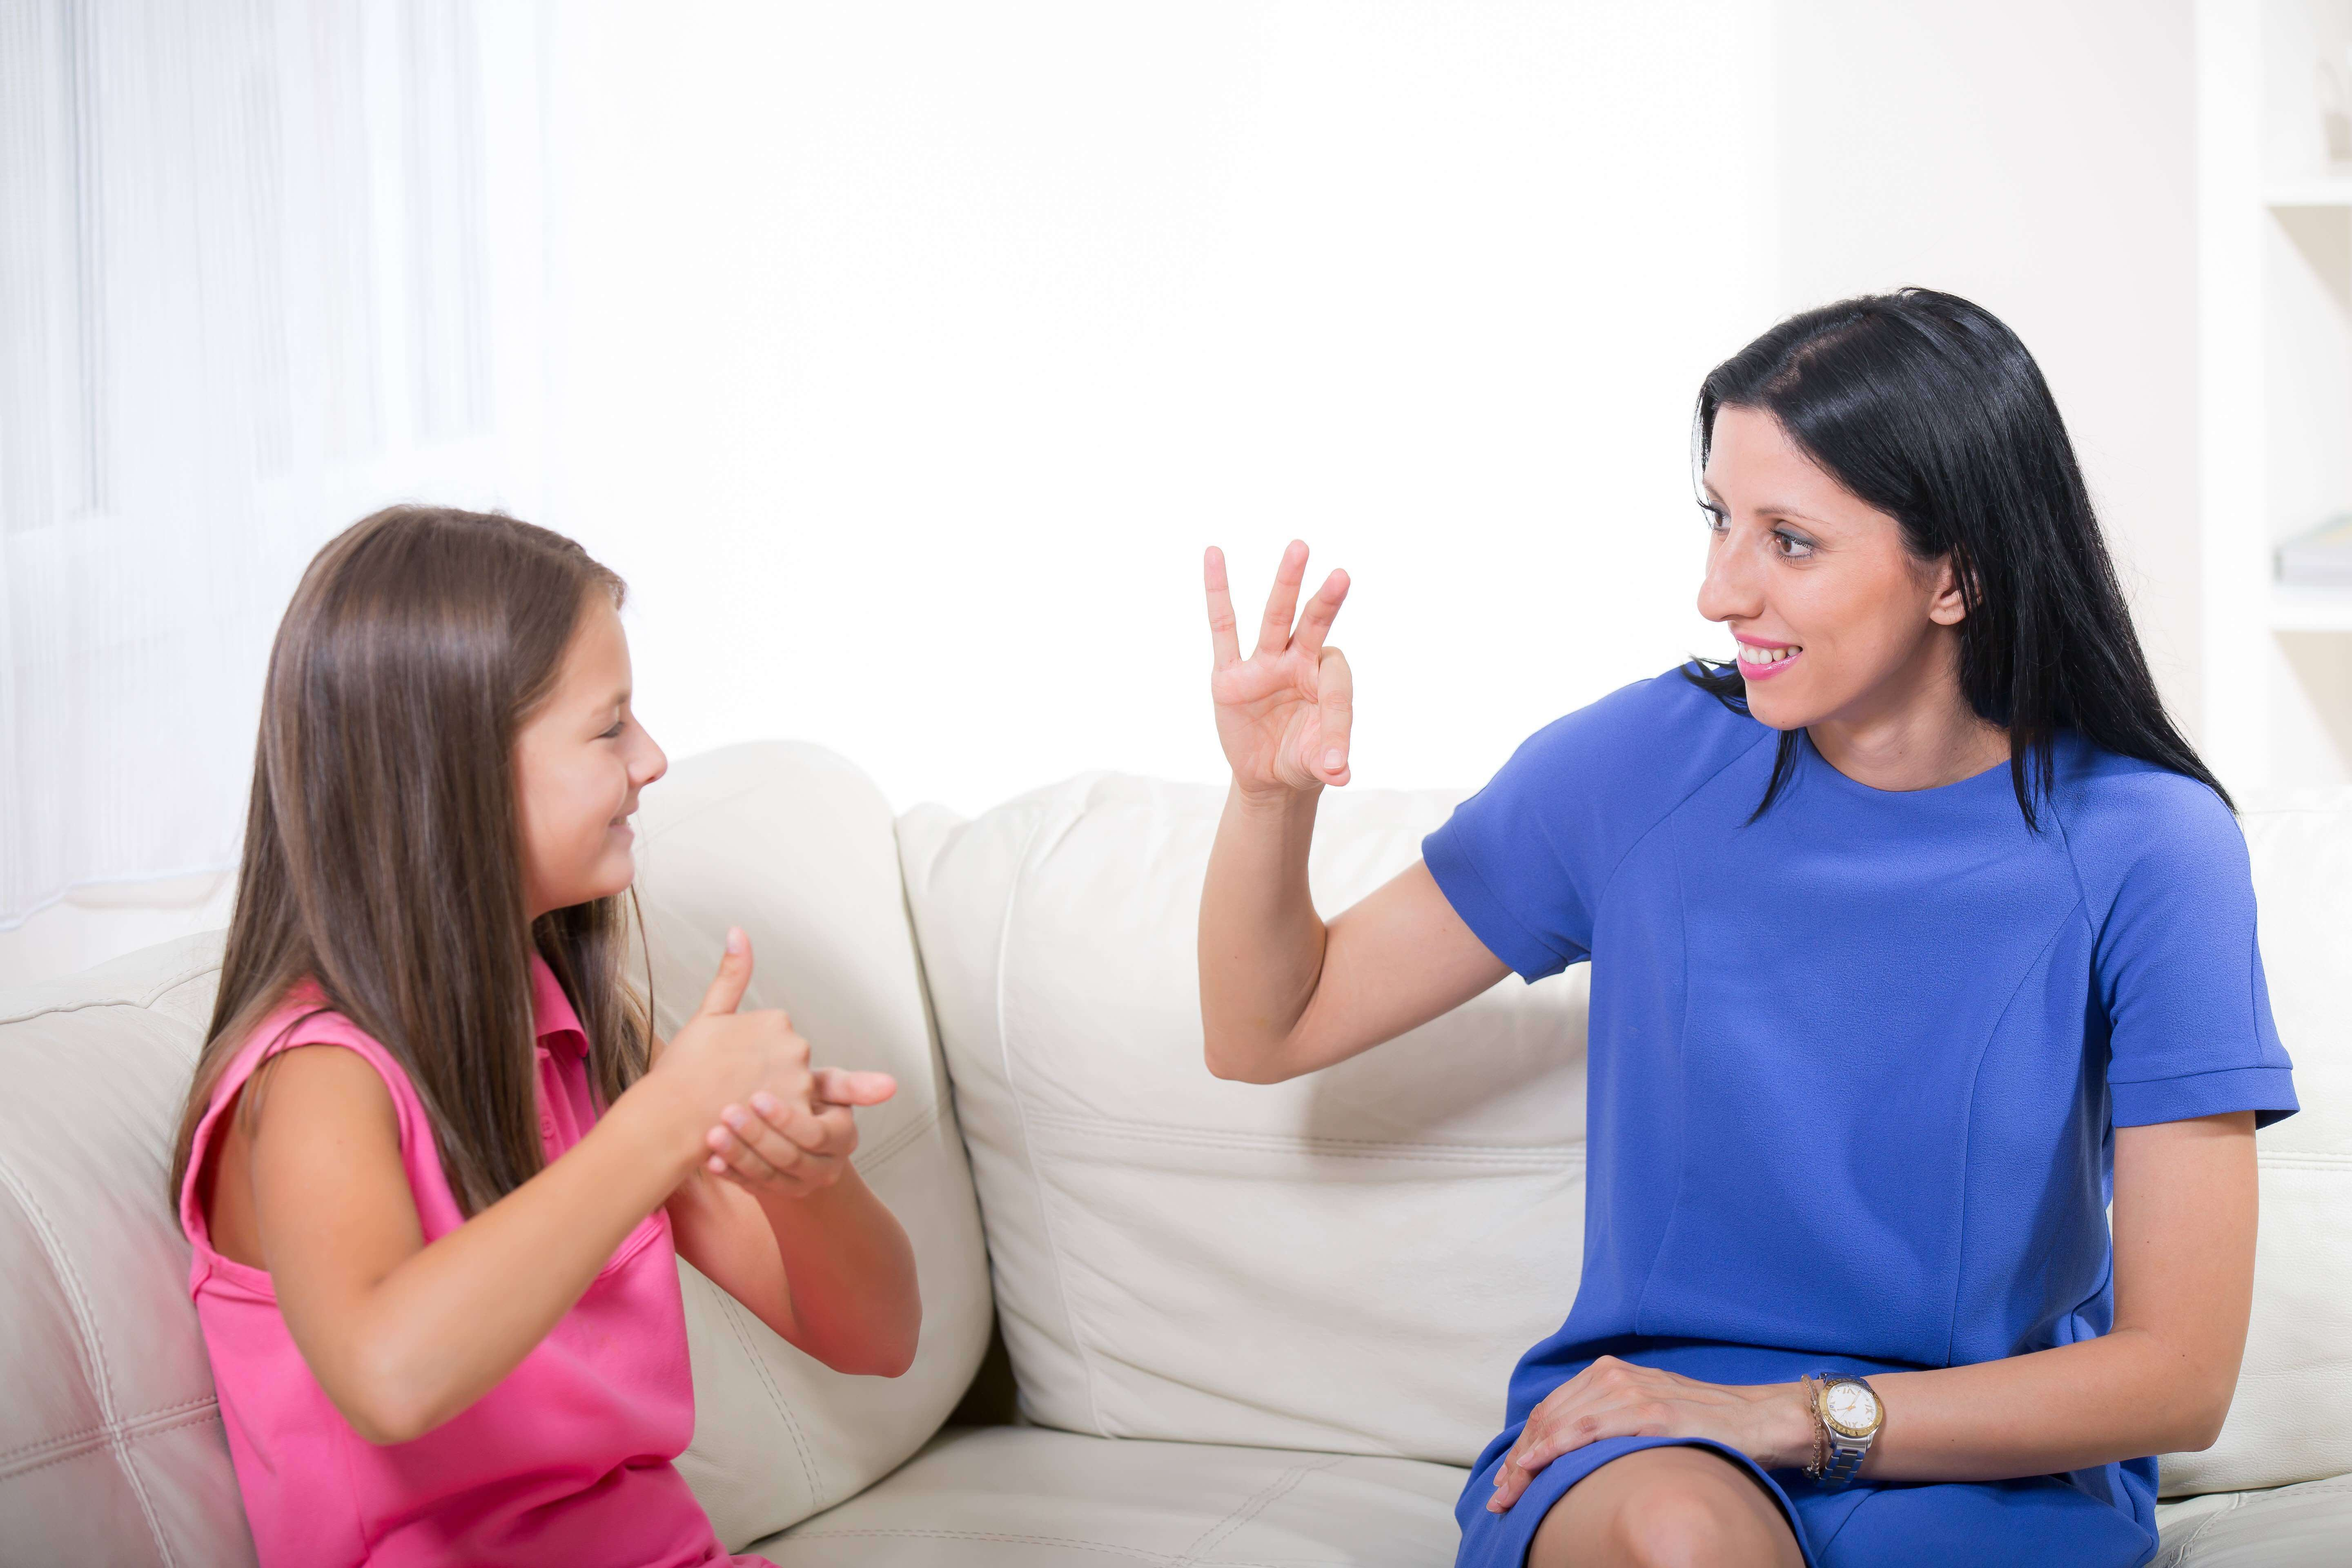 A girl uses sign language to communicate with a woman.